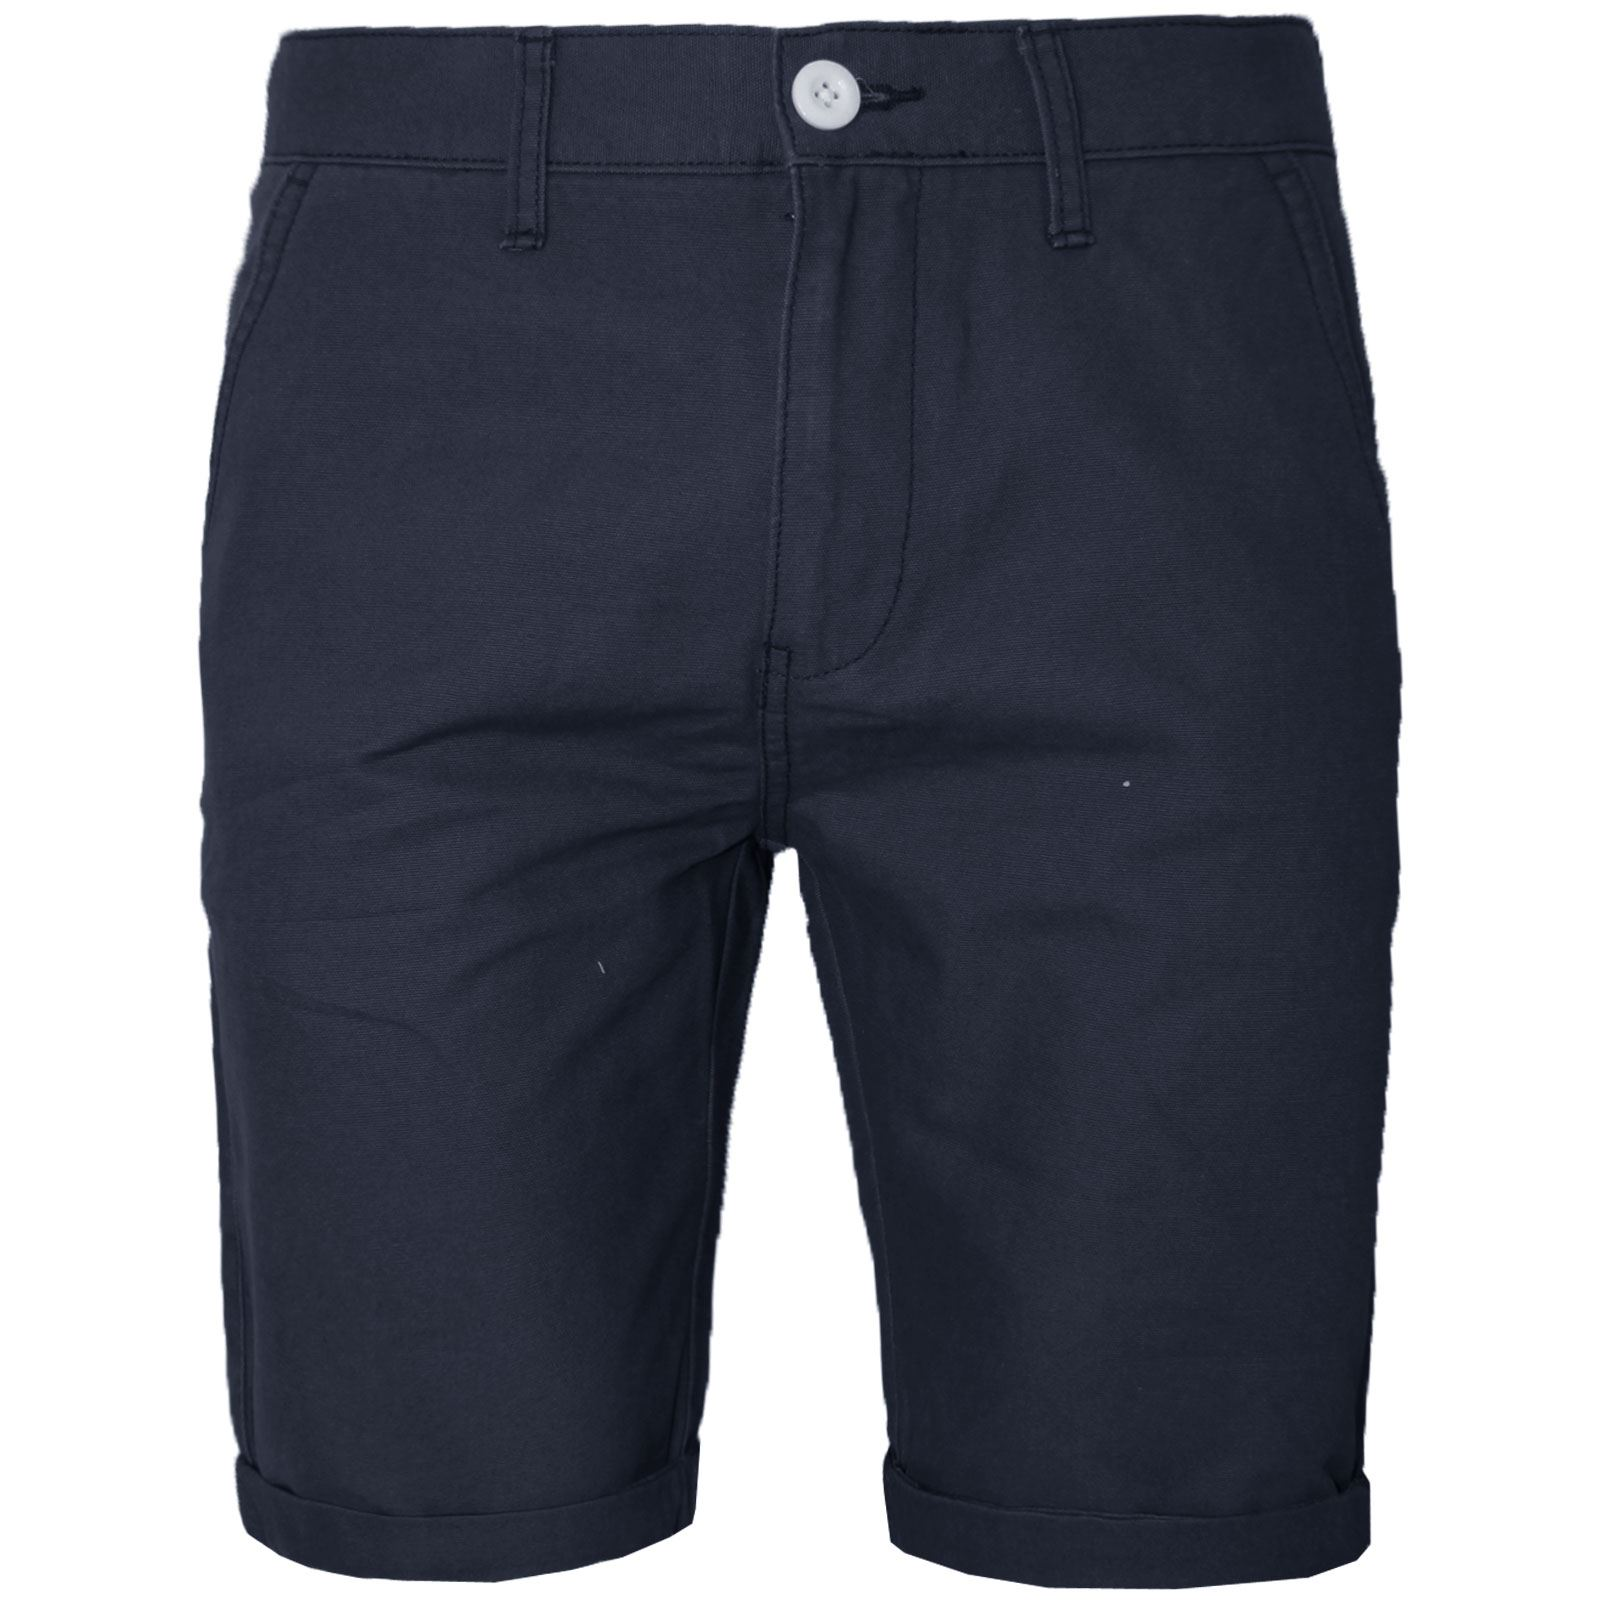 NEW MENS CHINO SHORTS SMART COTTON SUMMER COMBAT CASUAL CARGO ...